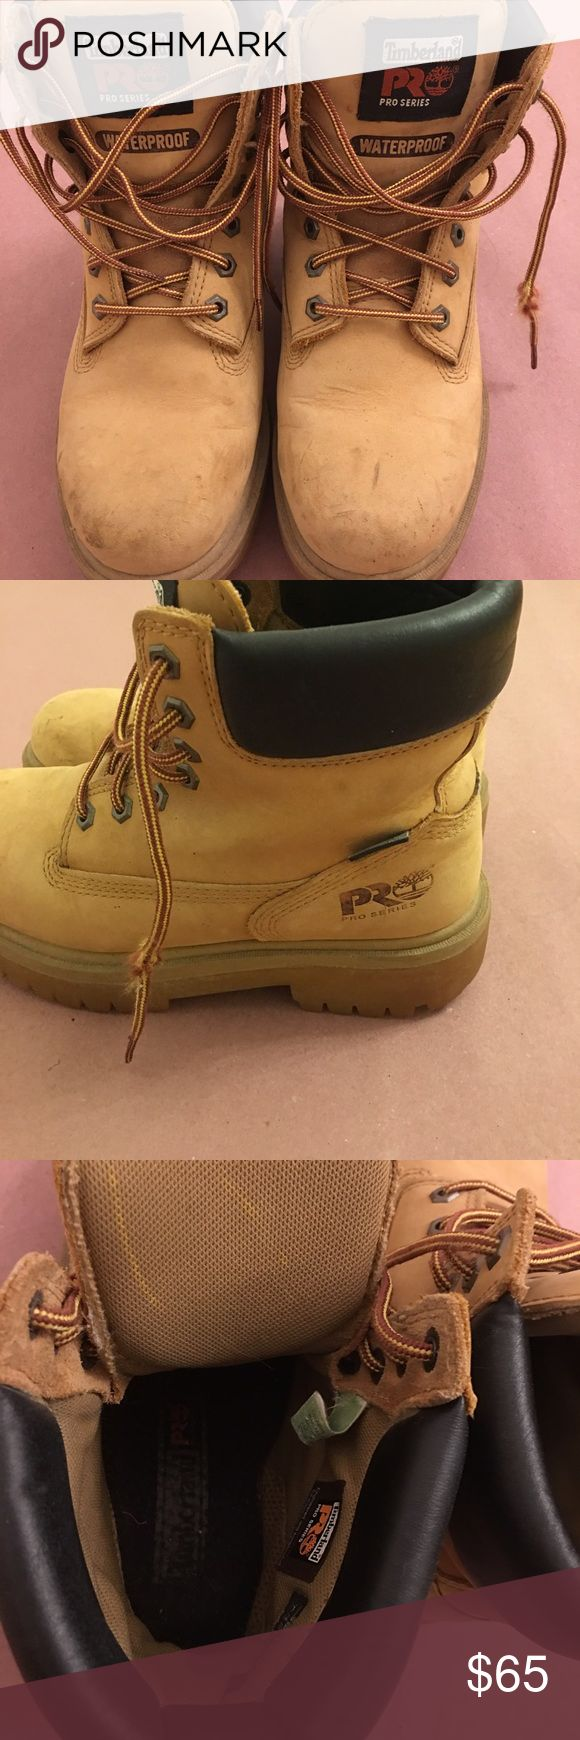 Timberland pro series women's 6.5 Excellent pair of women's authentic timberland pro series boots water proof size 6.5 runs a little large could fit women's 7. Price firm no trades Timberland Shoes Winter & Rain Boots